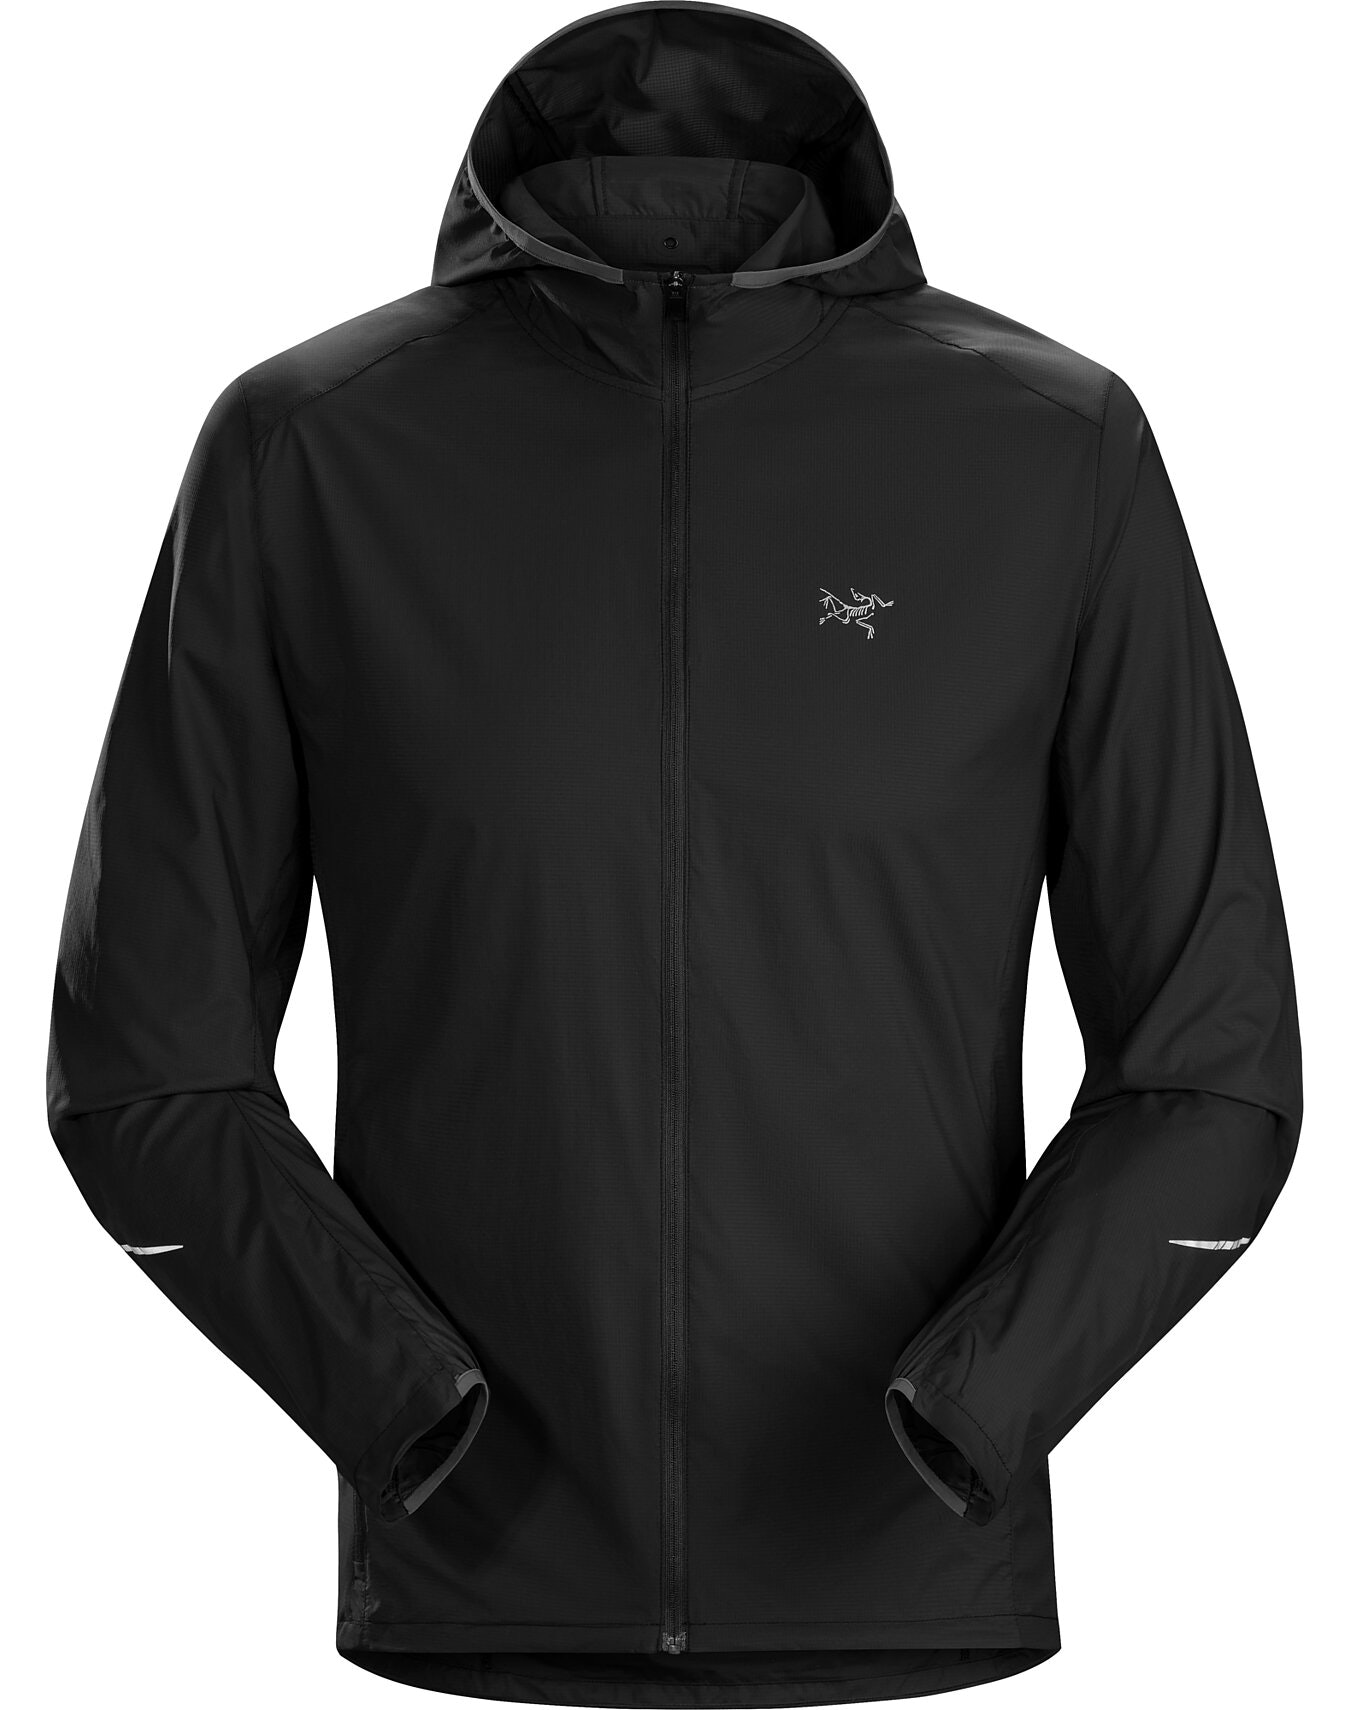 Incendo Hoody Black